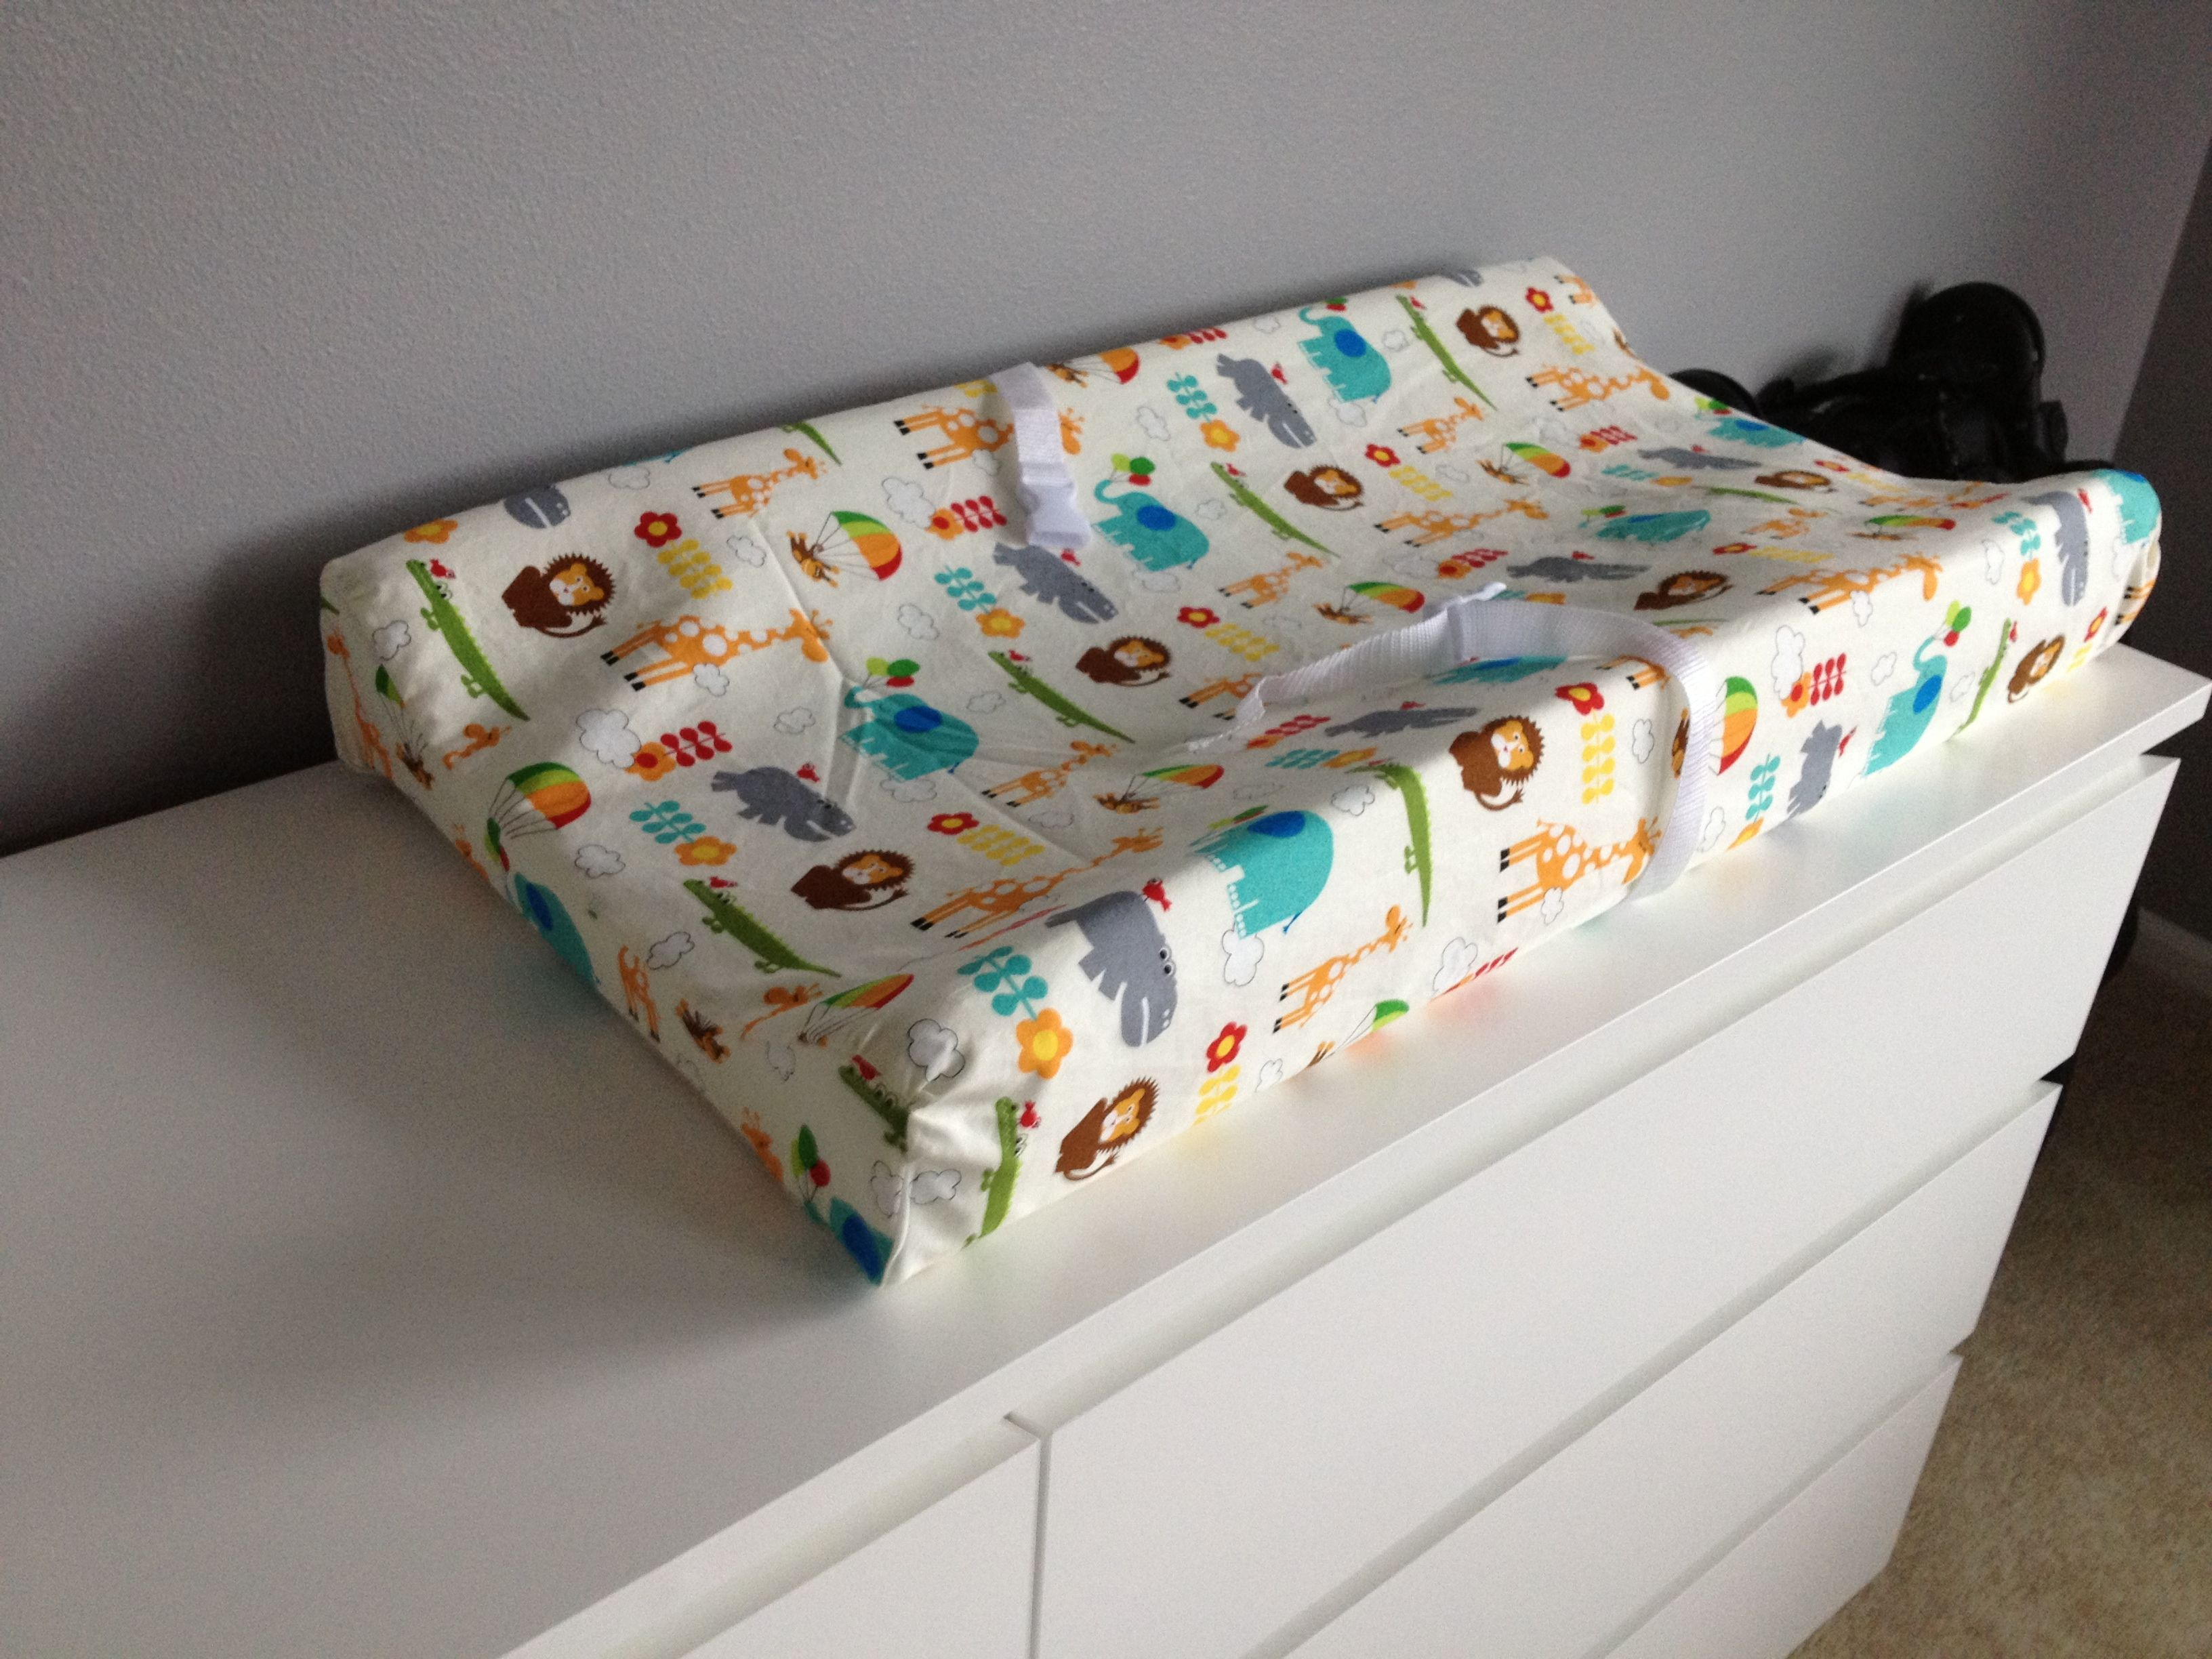 where cot bumpers bed toddler pads bolsters pin montessori bolster cushions baby buy crib to bumper cribs house